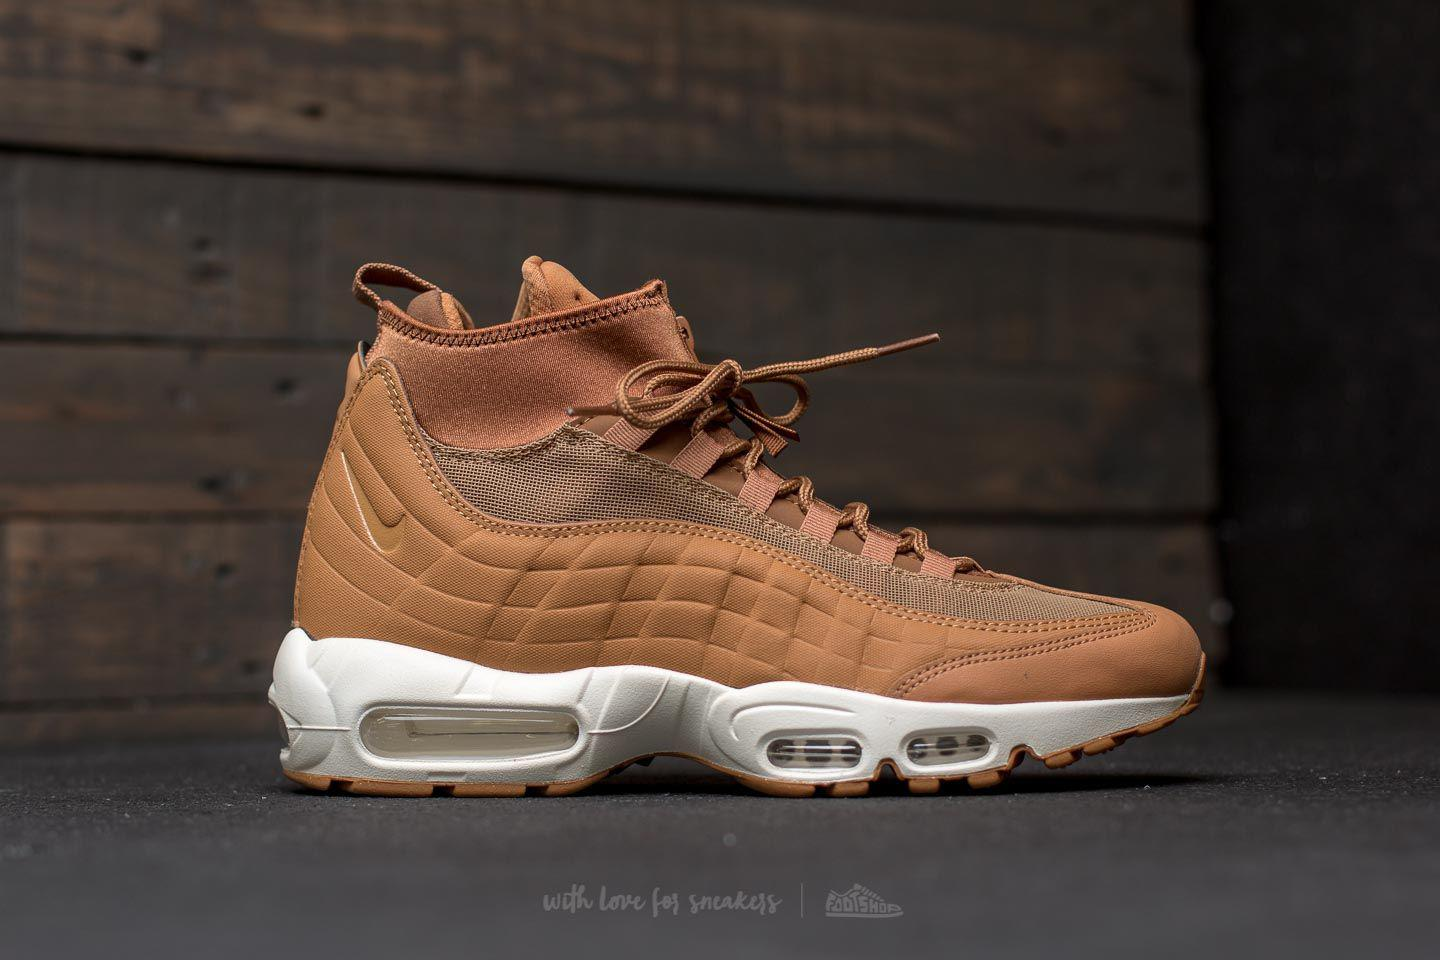 8cc841f633 Nike Air Max 95 Sneakerboot Flax/ Flax-ale Brown-sail in Brown for ...